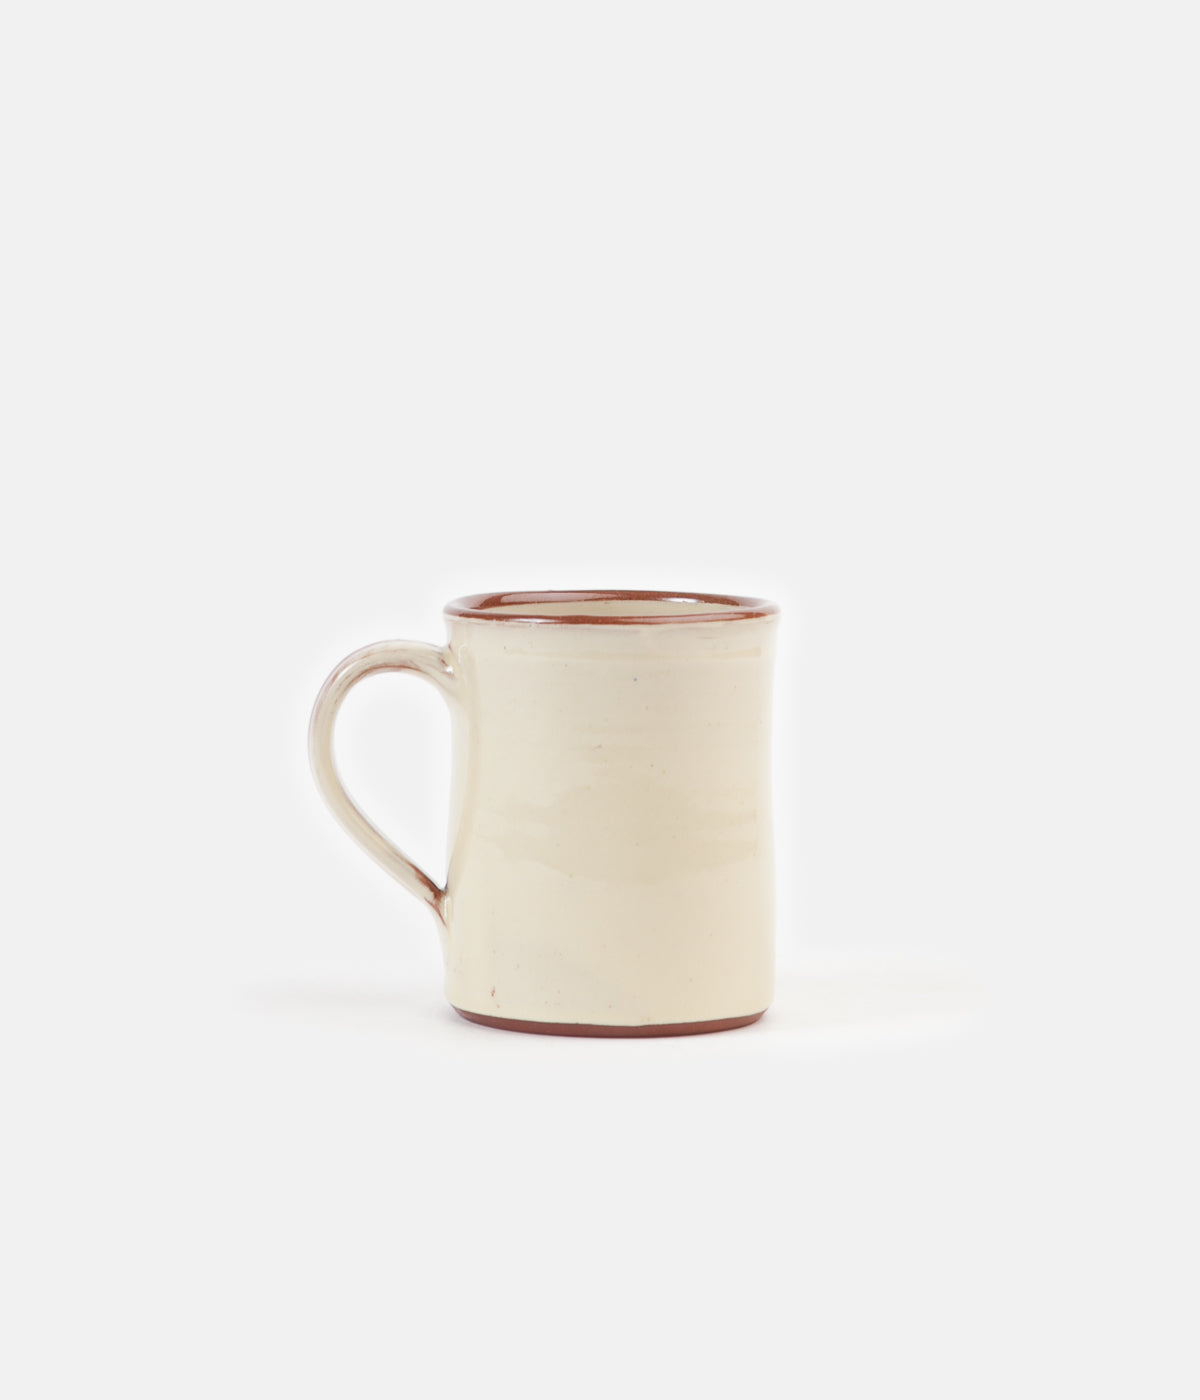 Tender Hand Thrown Natural Red Clay Coffee Mug Clear Glaze Always In Colour